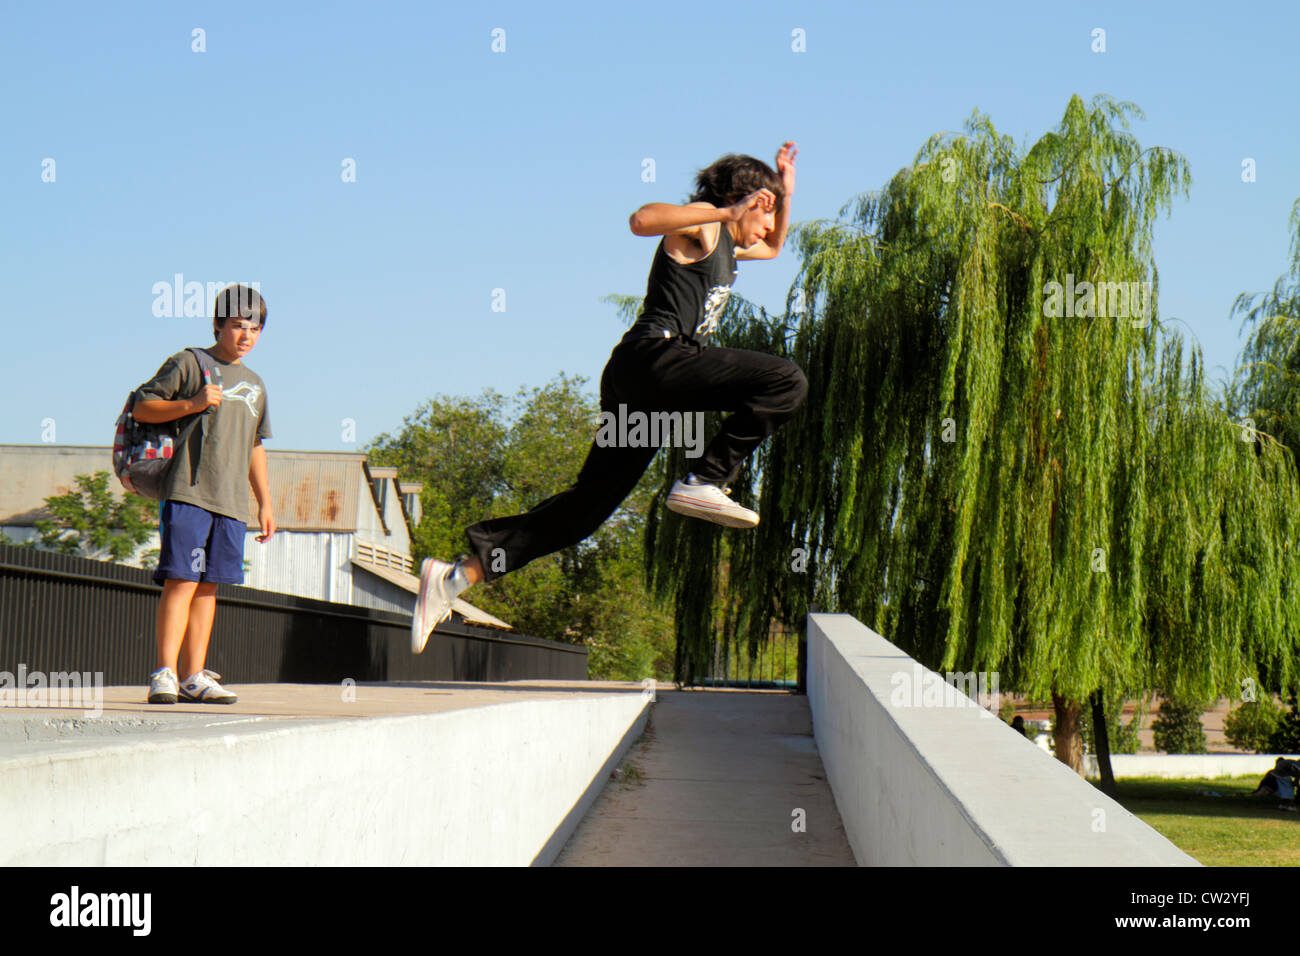 Mendoza Argentina Parque General San Martin public park pathway tree low wall Hispanic boy teen fitness sports freerunning - Stock Image